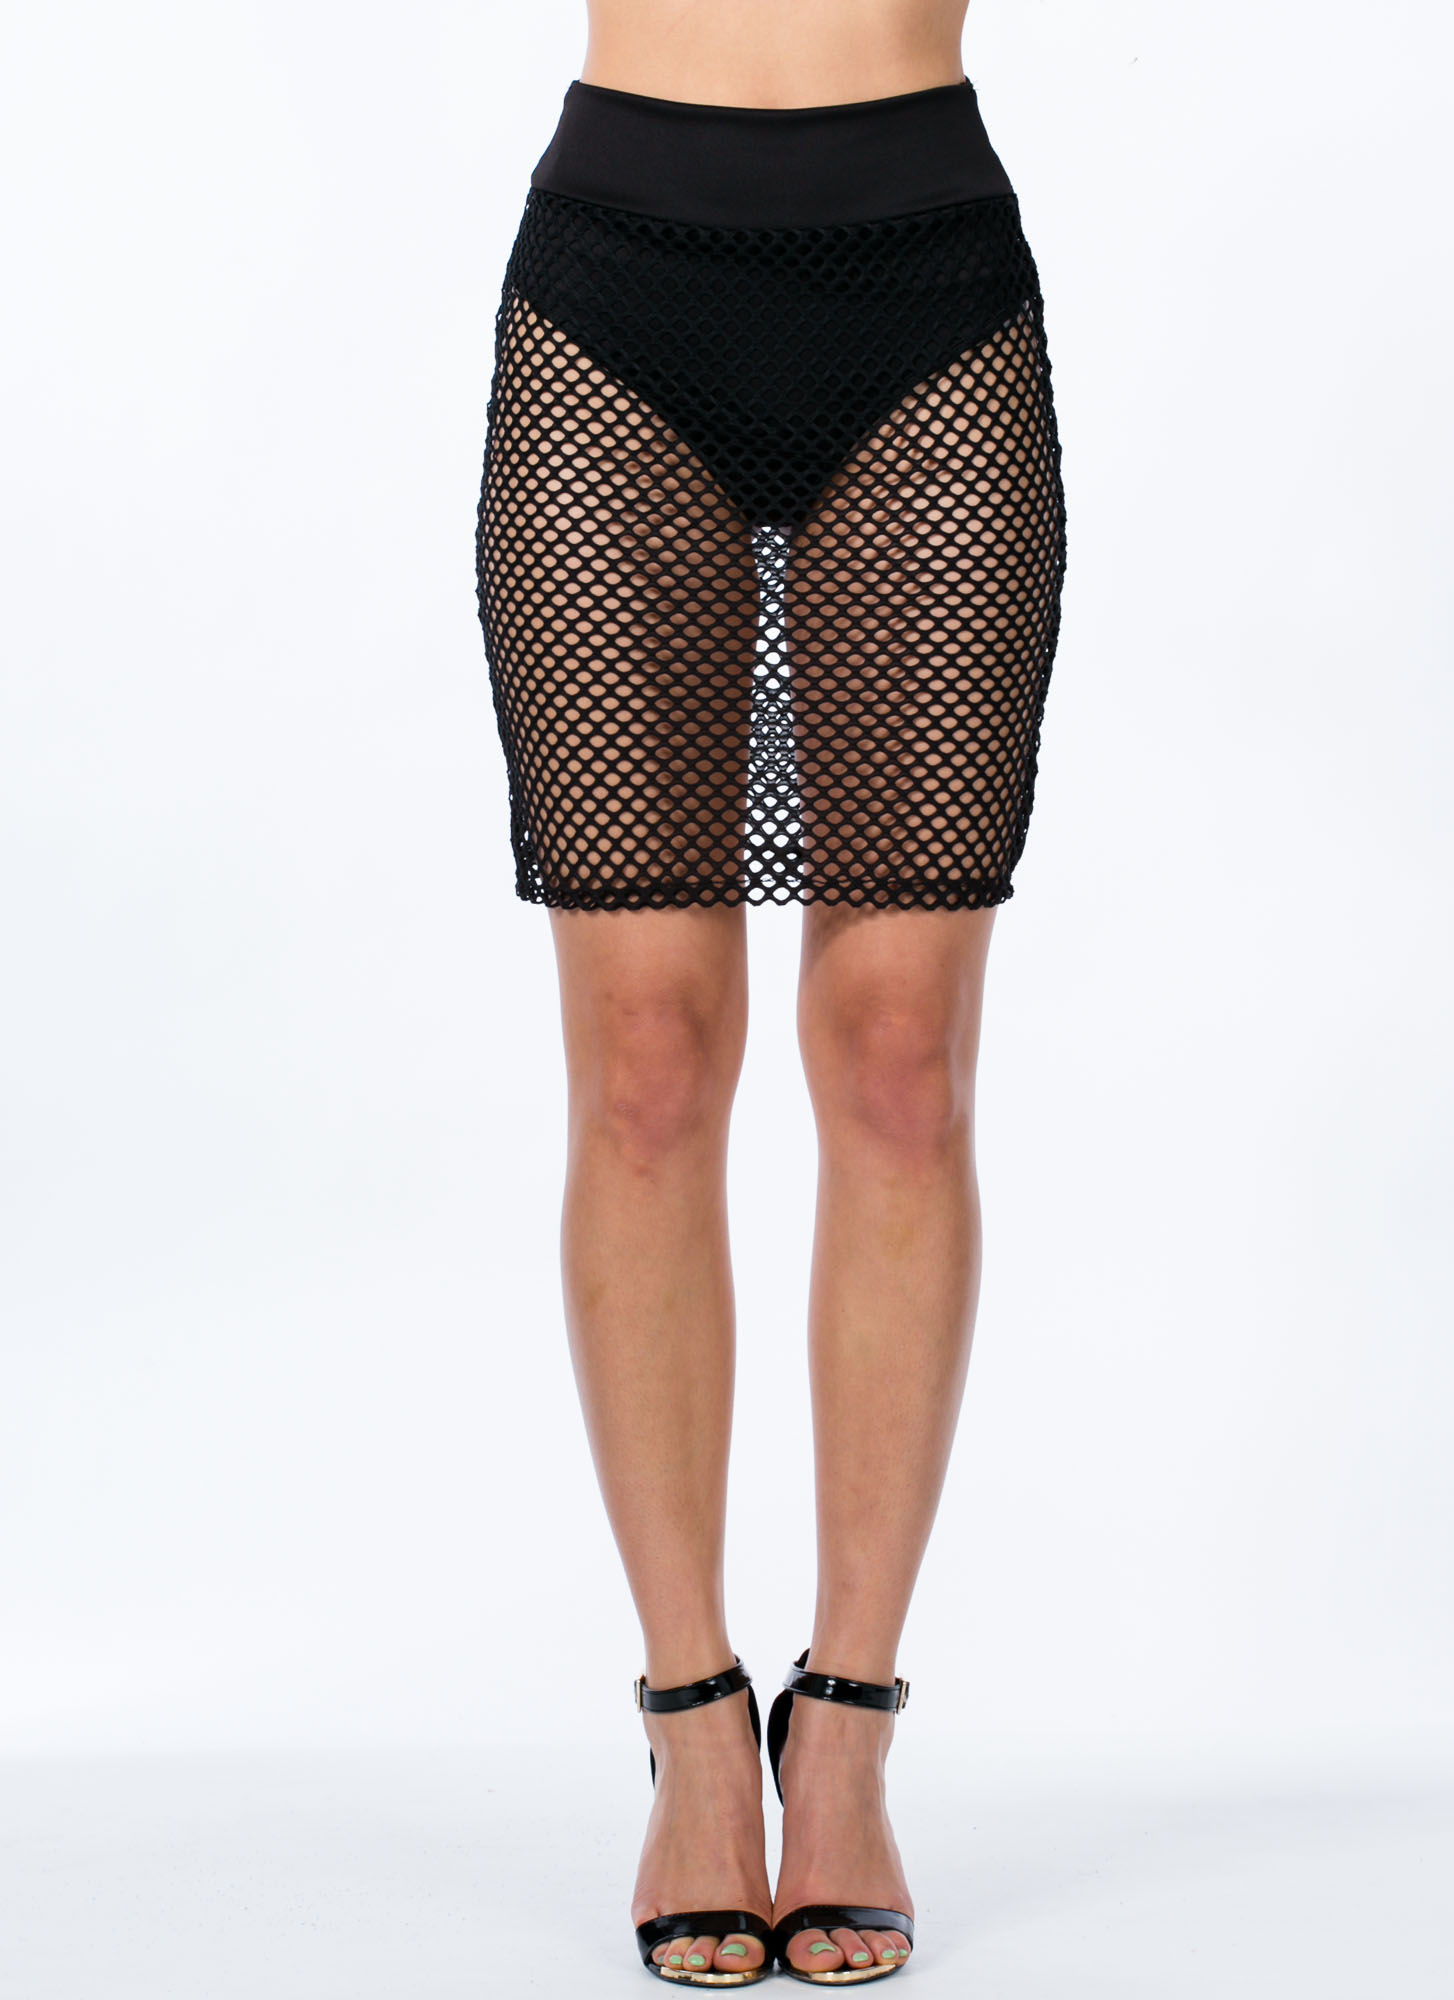 Nothin' But Net Brief Skirt BLACK